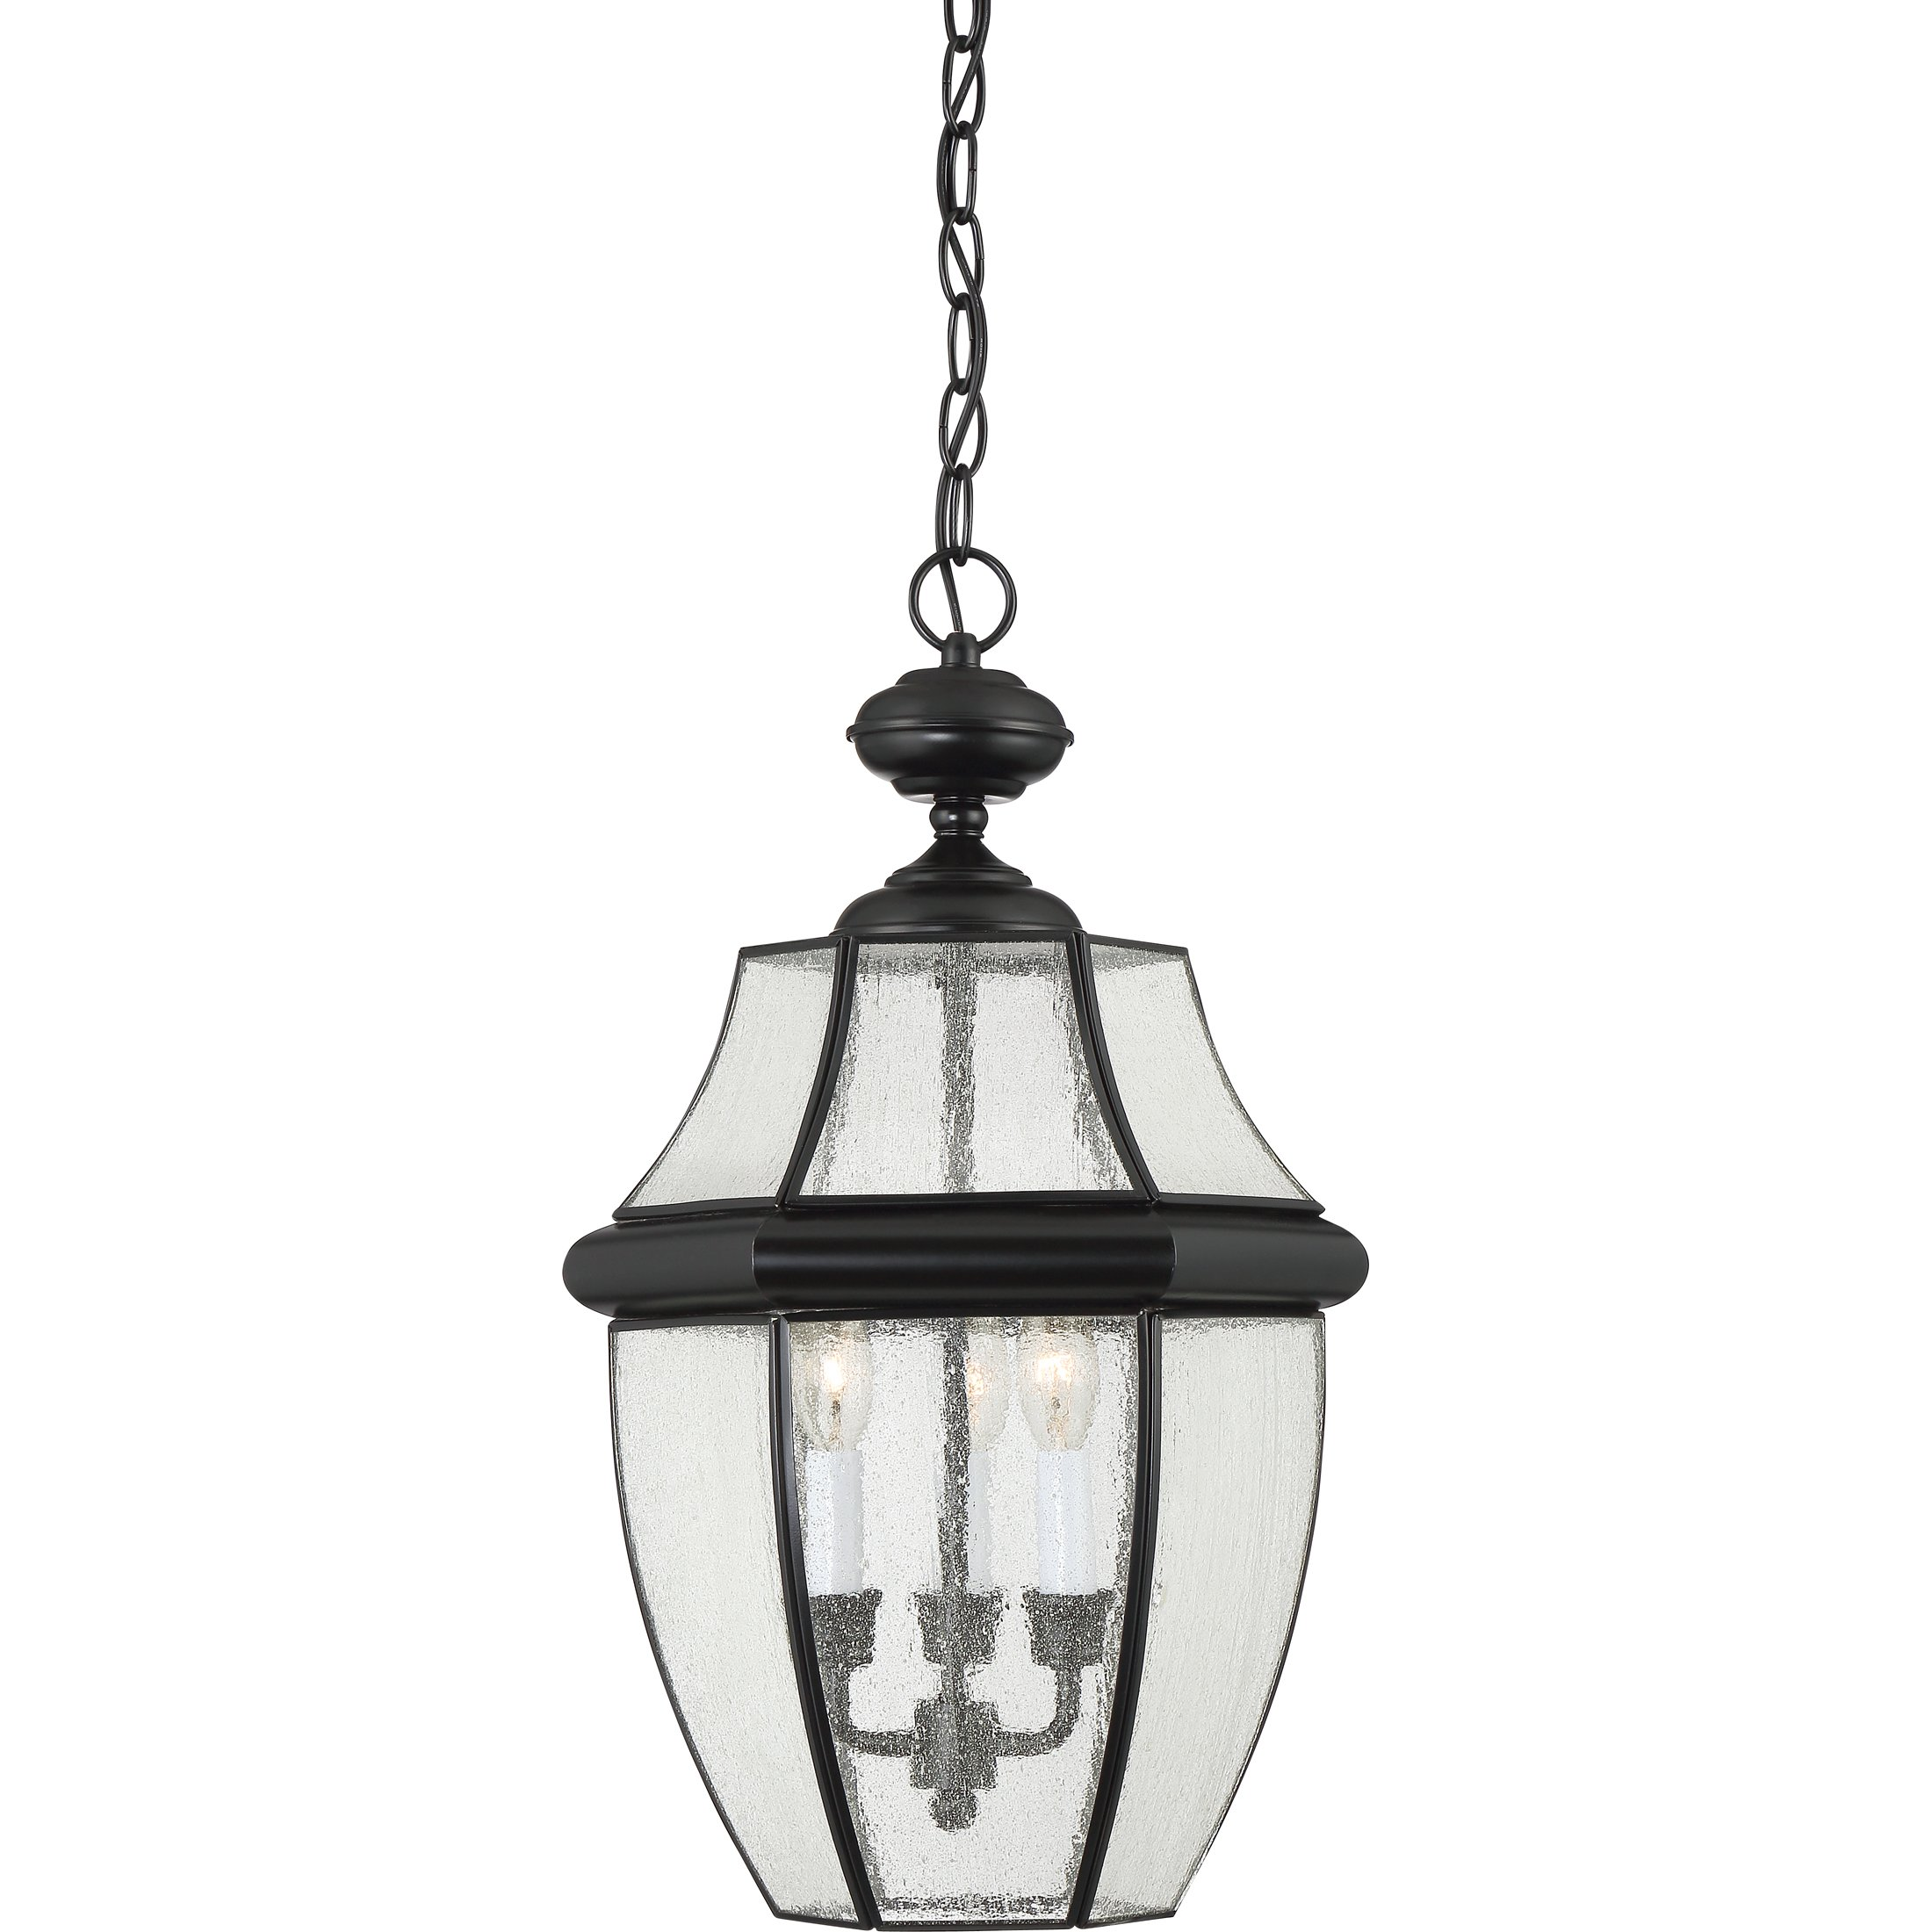 Quoizel NY1912K Three Light Outdoor Hanging Lantern by Quoizel